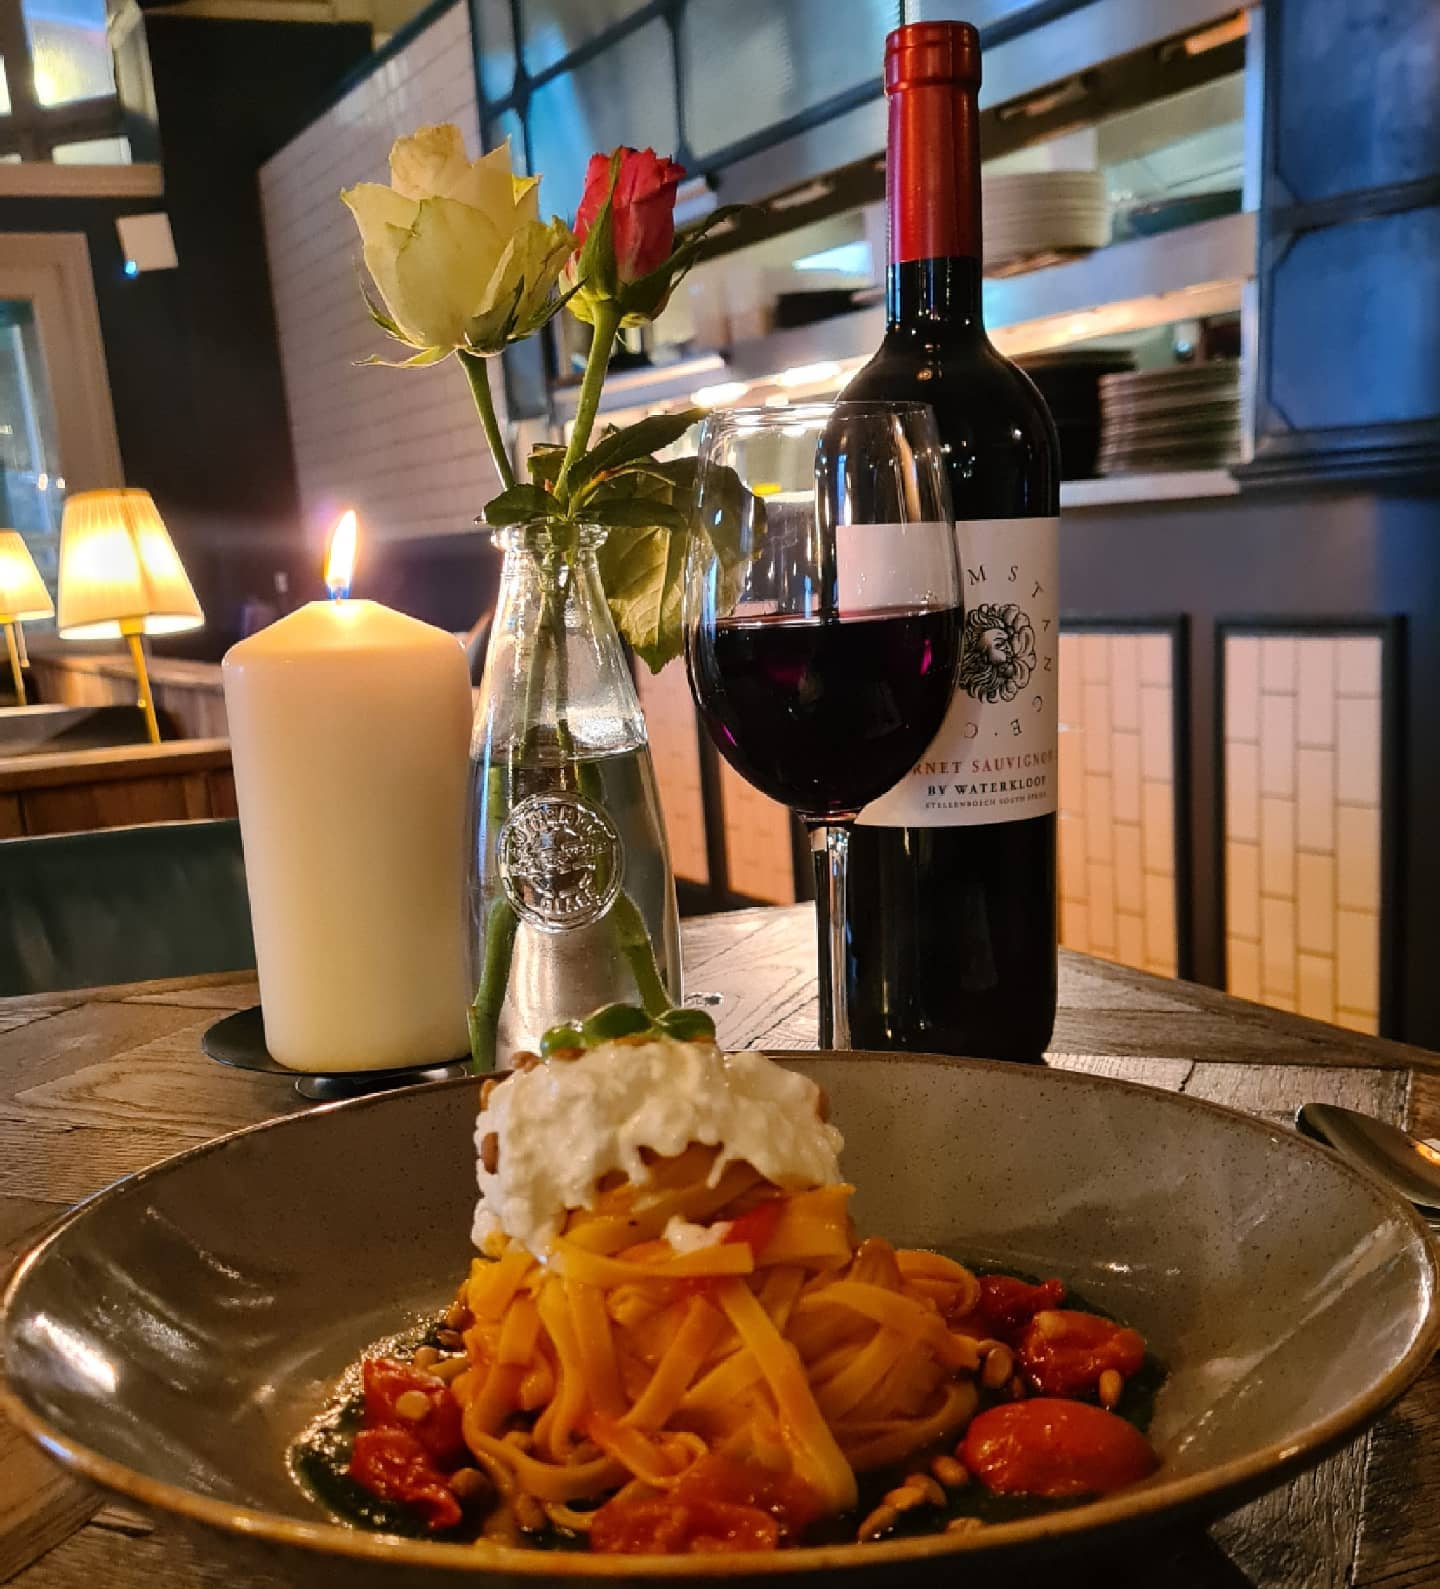 🎈🎈What an exciting day🎈🎈 Welcoming you back inside with an indulgent new menu and an escape from the thunderstorms outside! 🍷 This rich and creamy tagliolini with creamy burrata, basil pesto and Sicilian tomato sauce is perfect accompanied by our favourite wine, a South African Cabernet Sauvignon. 🍽 #tootingbec #welcomeback #balham #beer #pub #wine #happy #redwine #circumstance #cabernetsauvignon #pasta #pesto #dining #london #restaurant #kitchen #sw17 #british #weather #rain #thunder #supportlocal #weekend #urbanpubsandbars #newmenu #cheflife #wine #pubs #tomato #roses #whiterose